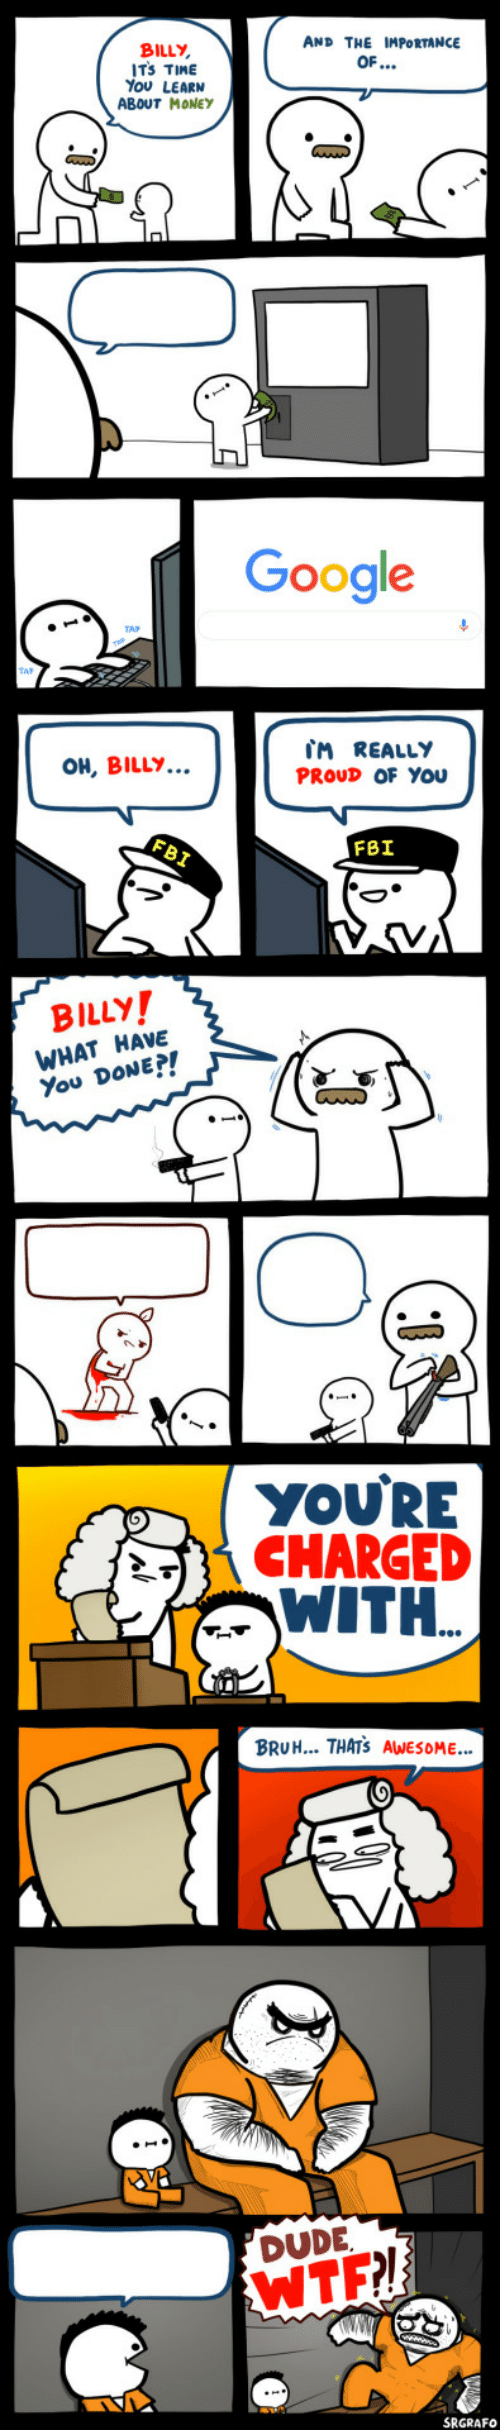 Billy: AND THE IMPORTANCE  BILLY,  ITS TIME  You LEARN  ABOUT MONEYy  OF...  Google  IM REALLY  PROUD OF YOu  OH, BILLY...  FBI  FBI  BILLY!  WHAT HAVE  You DONE?!  YOU'RE  CHARGED  WITH.  BRUH... THATS AWESOME..  DUDE  WTF!  SRGRAFO